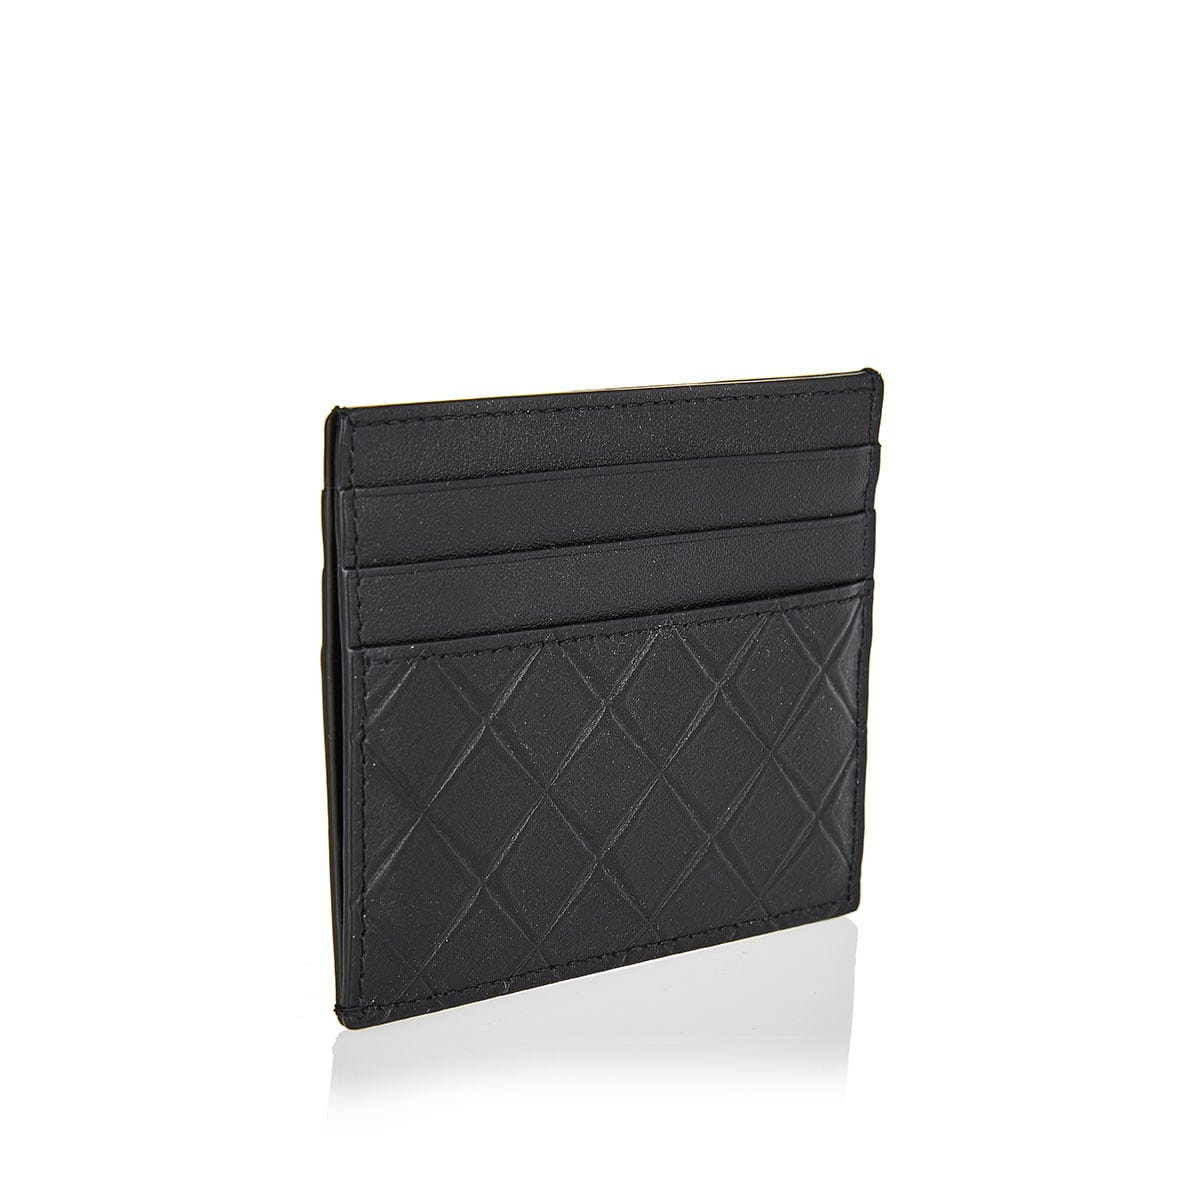 Embossed-leather card case